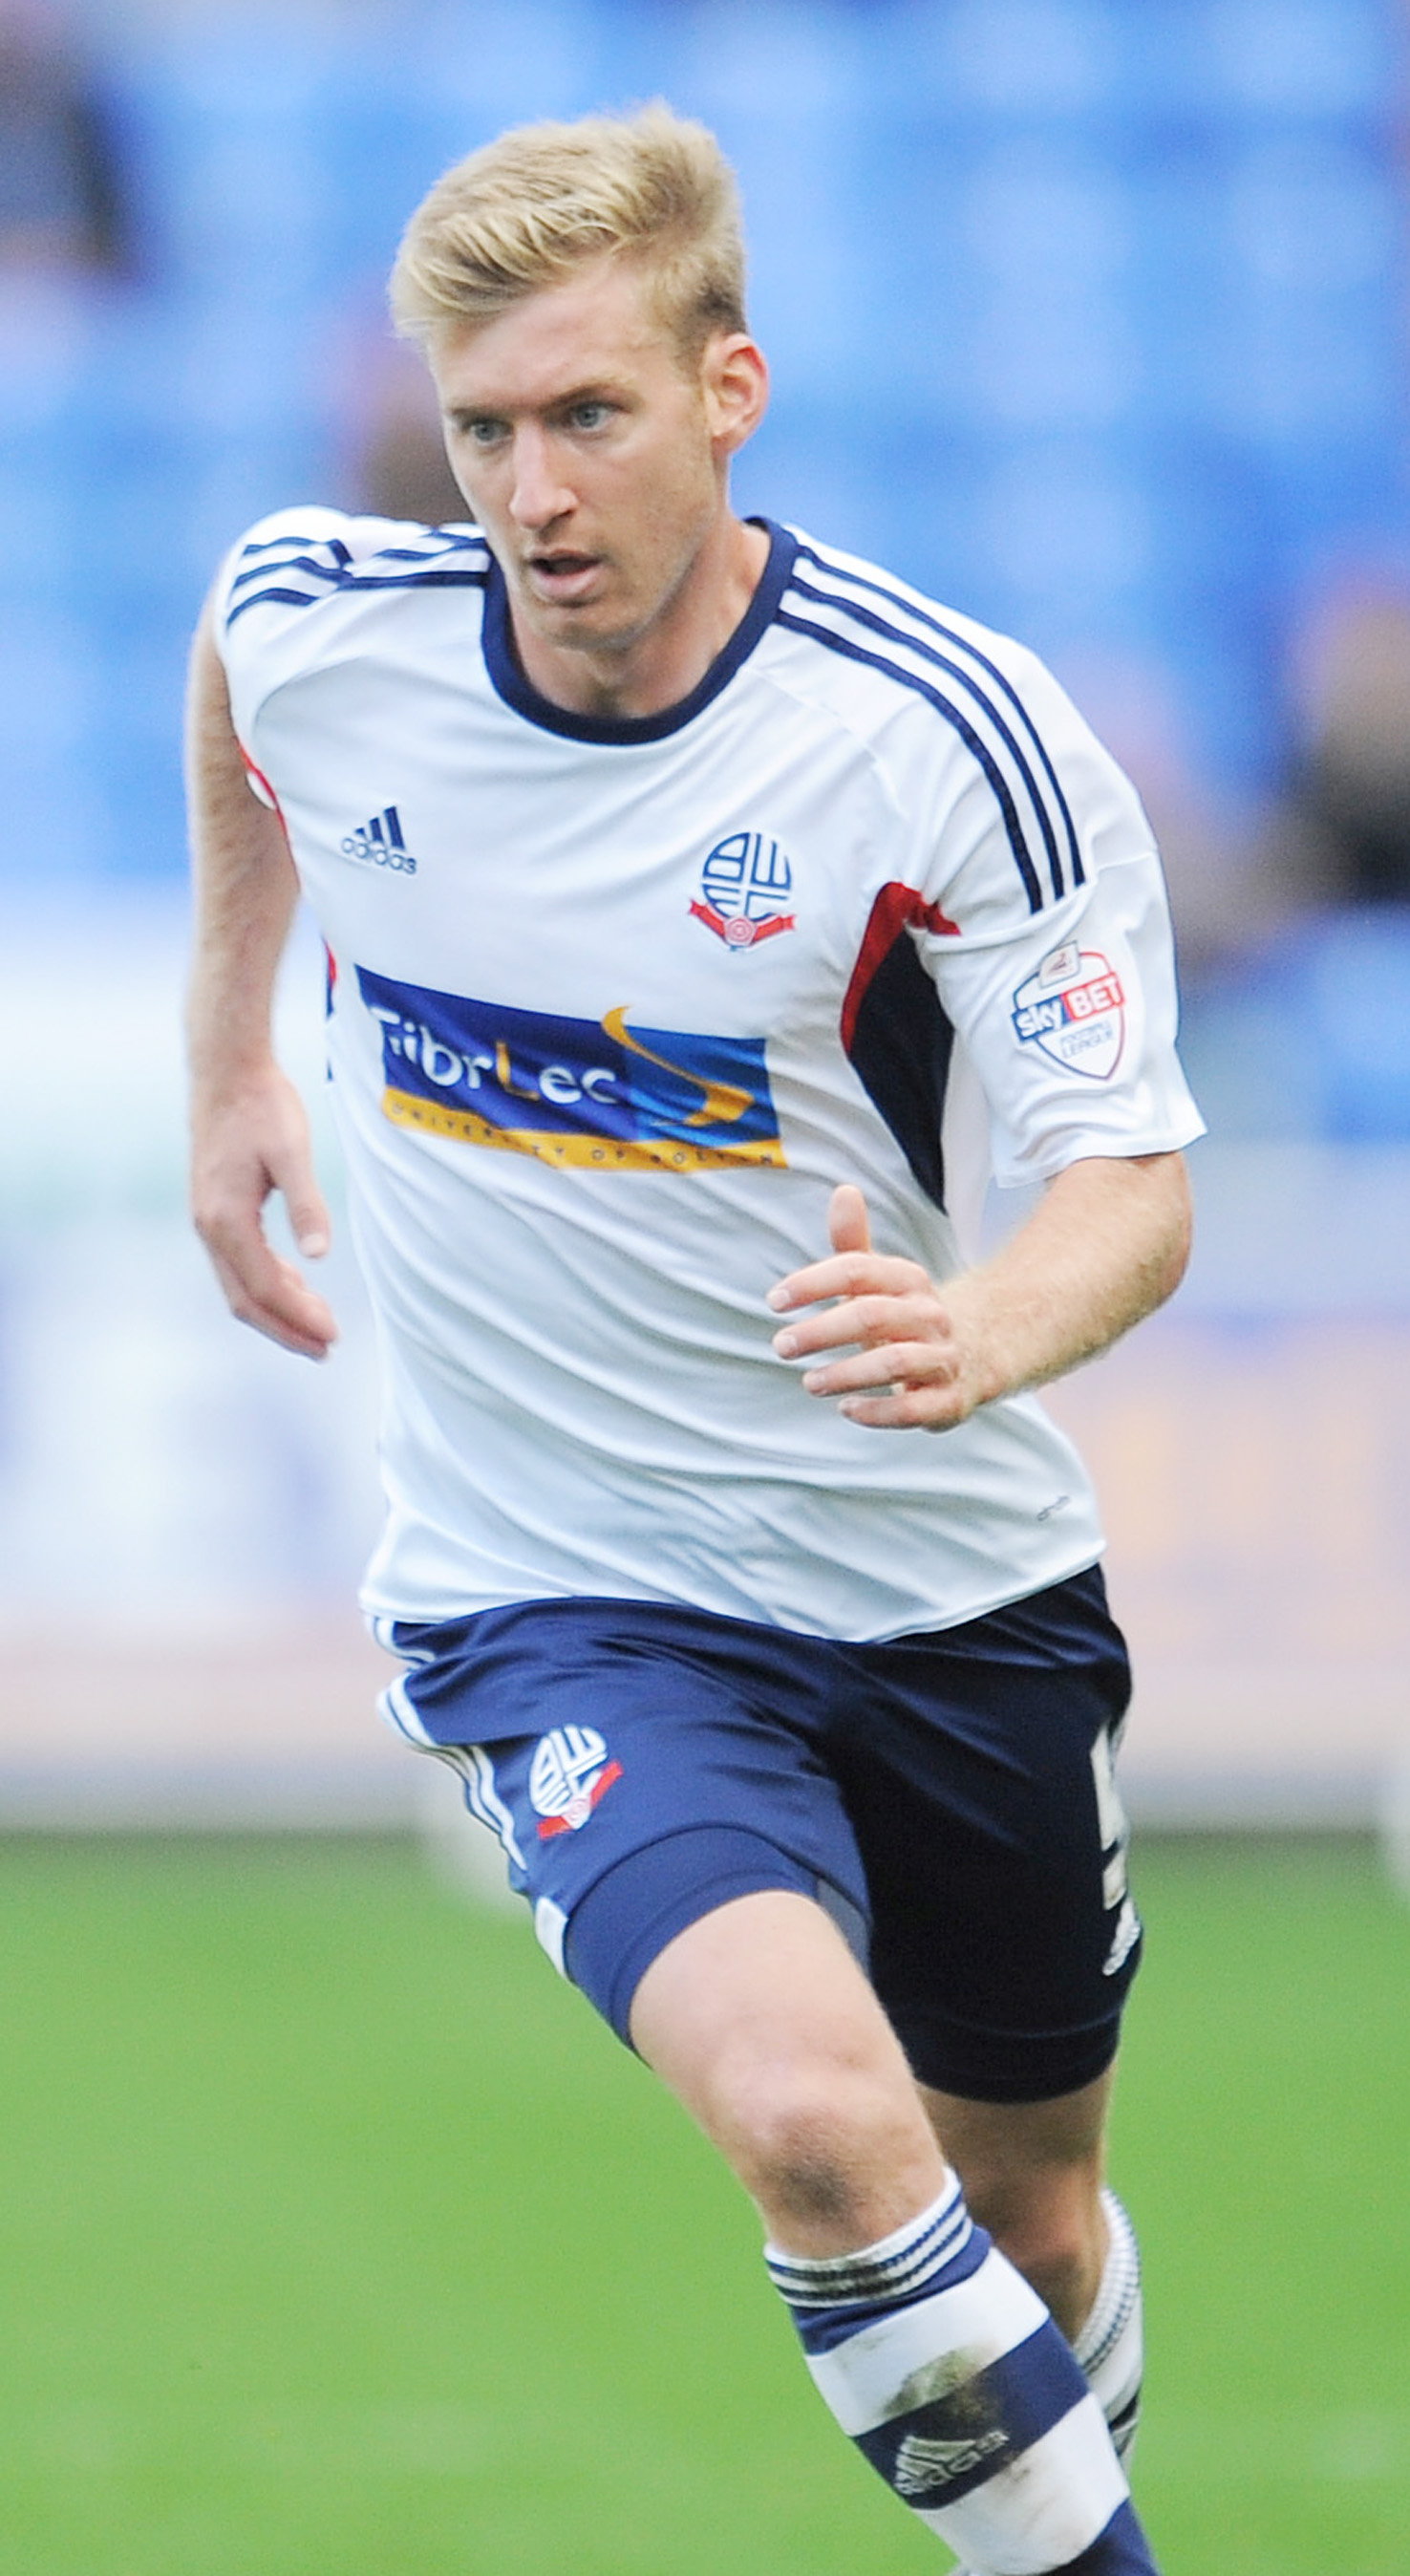 Player of the year Tim Ream has signed a new deal at Wanderers until 2017